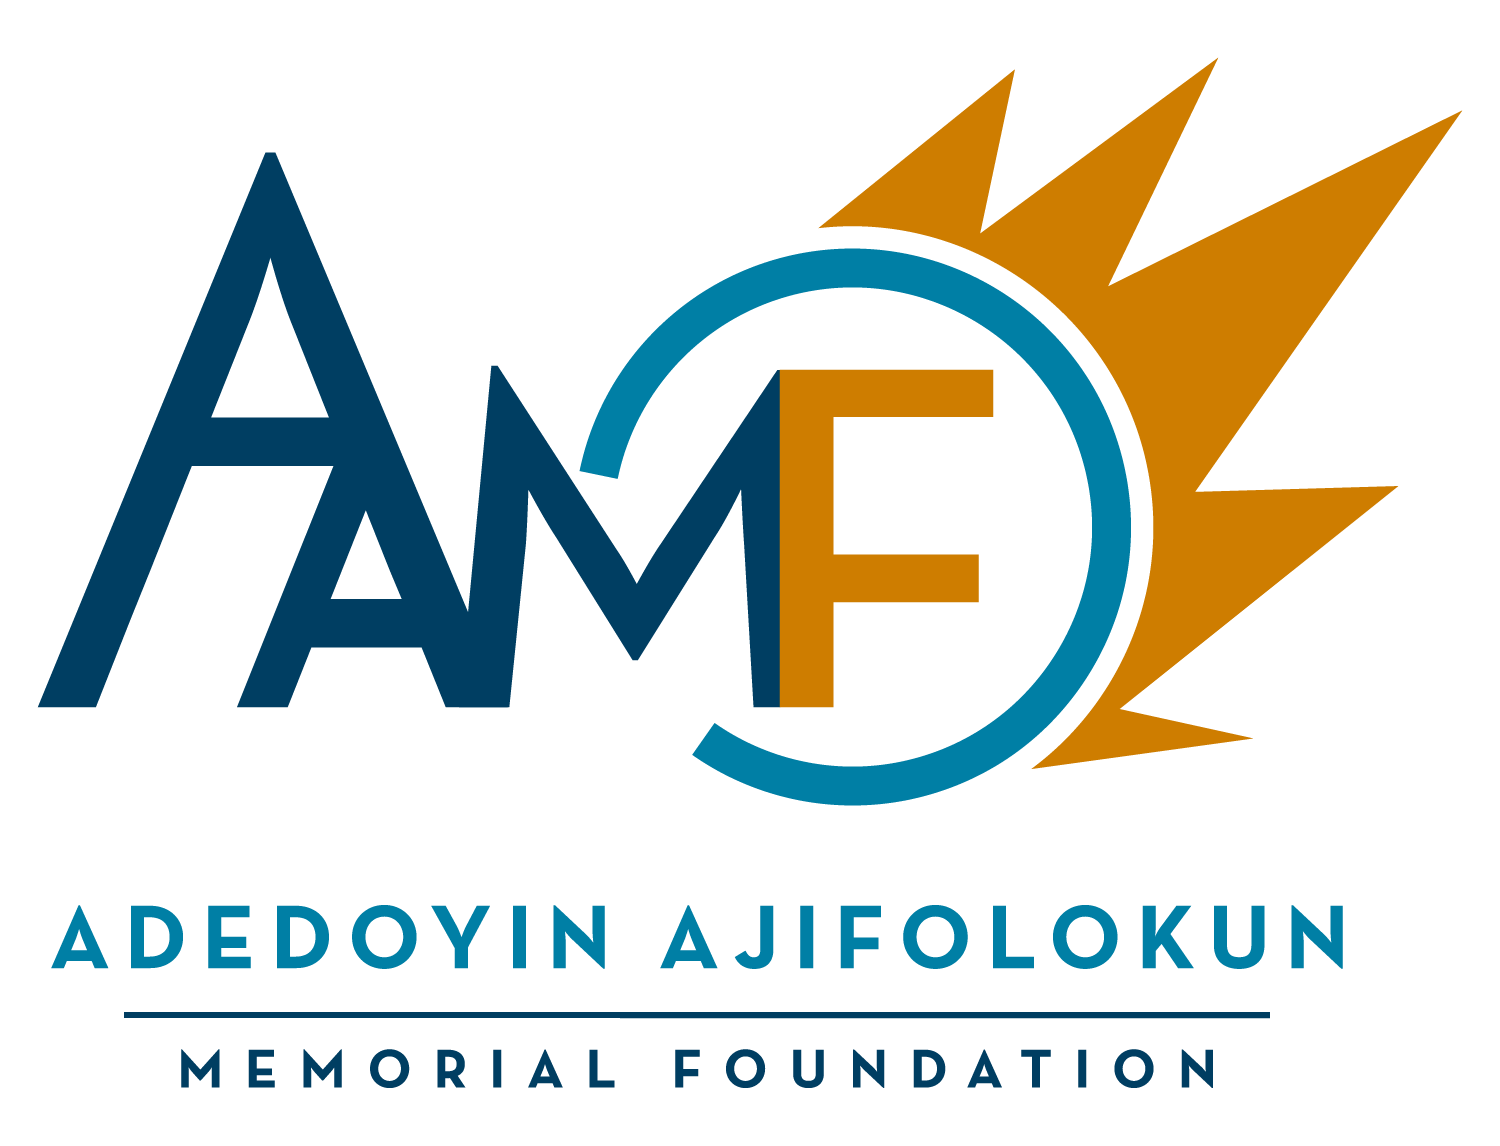 Adedoyin Ajifolokun Memorial Foundation